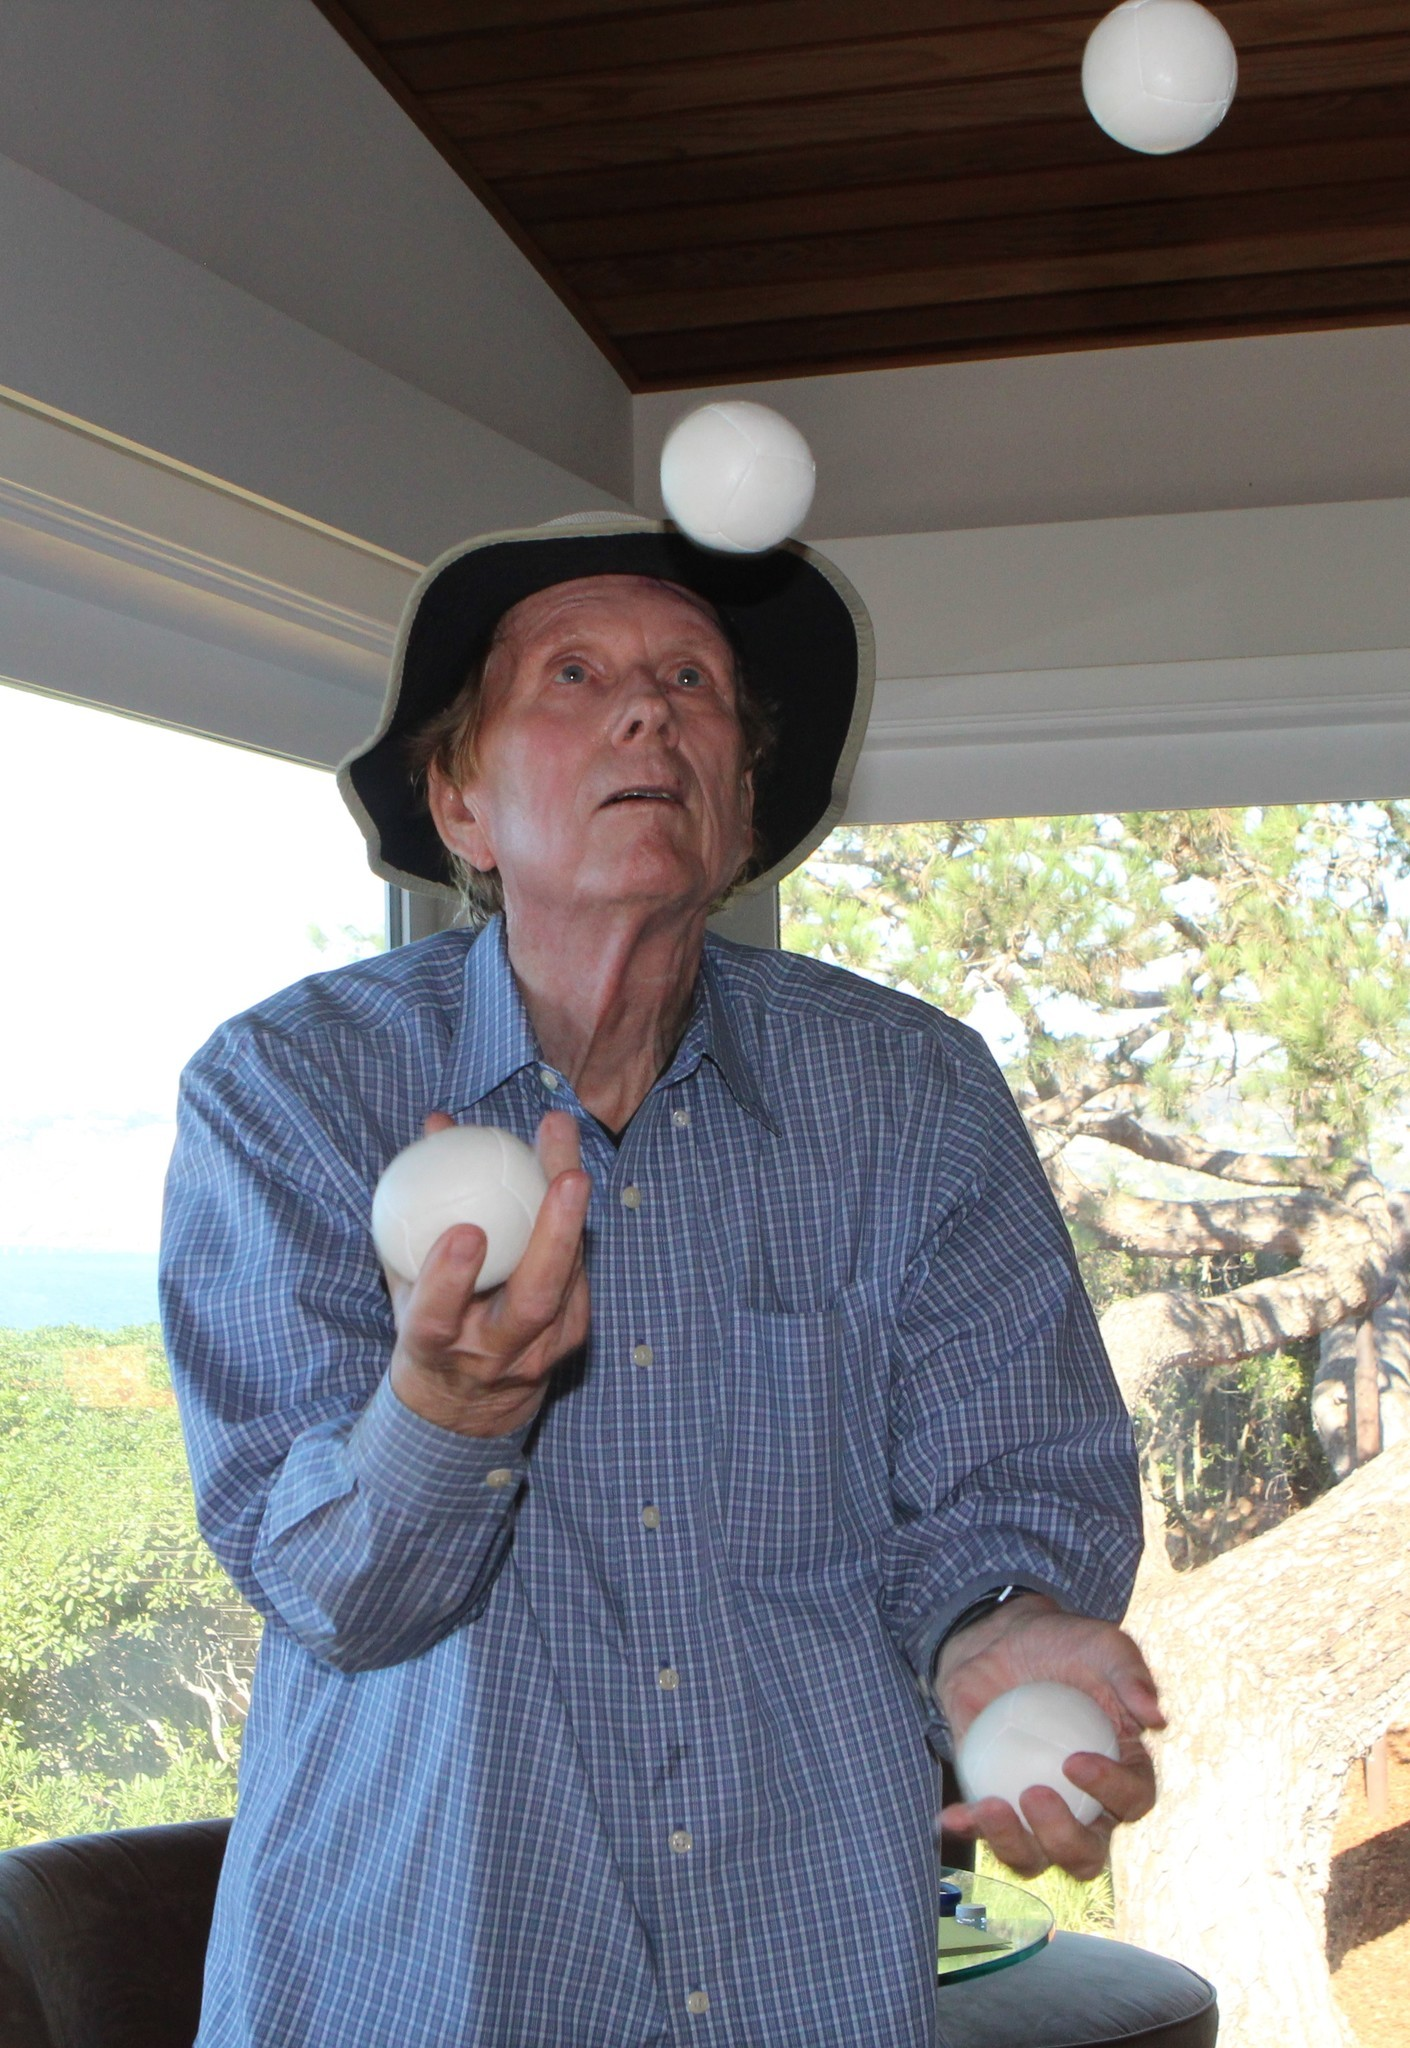 Ronald Graham juggles four balls in his bedroom.